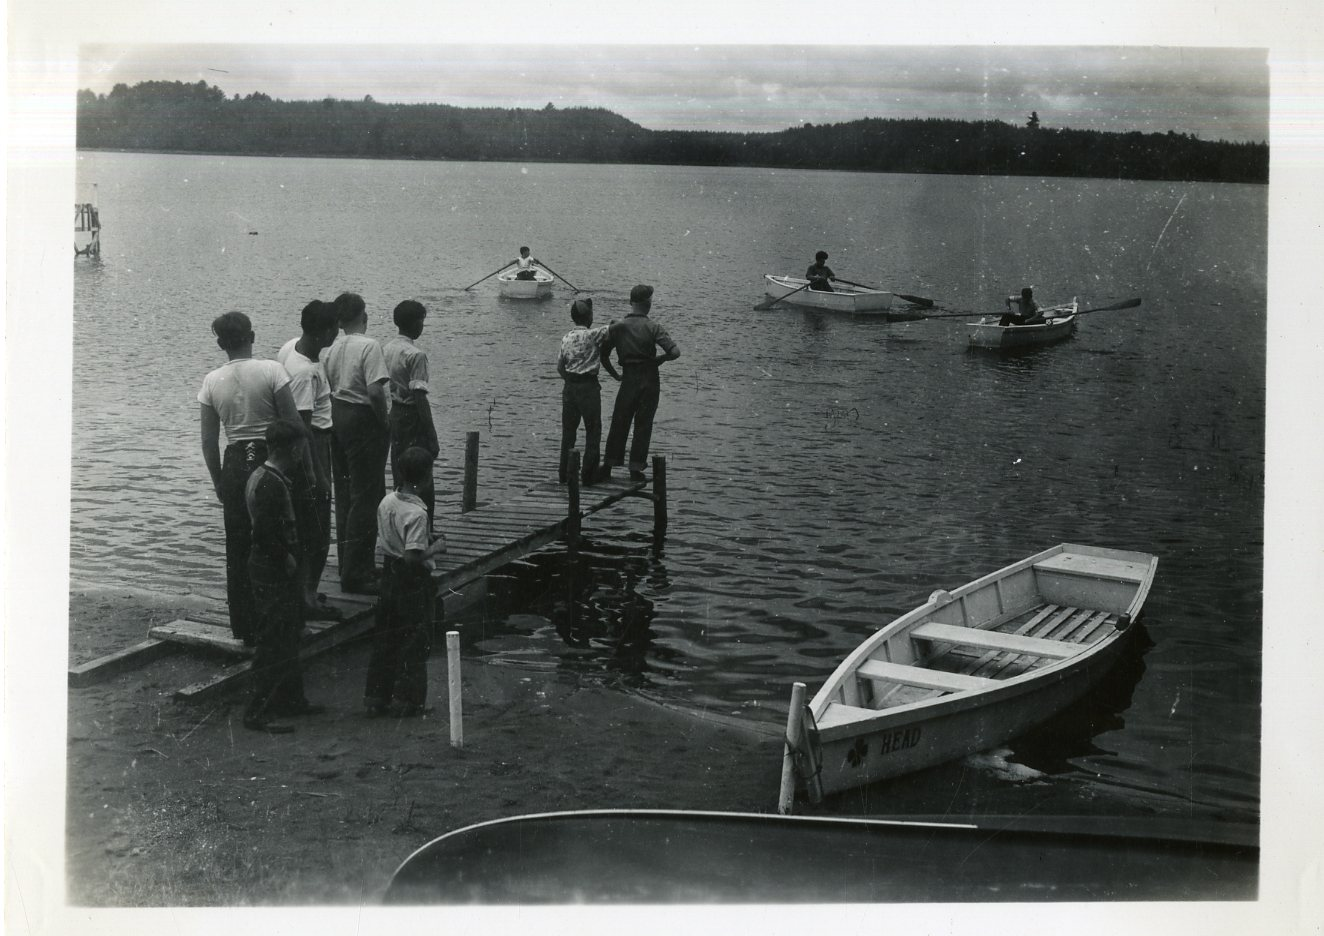 Boys Rowing Boats